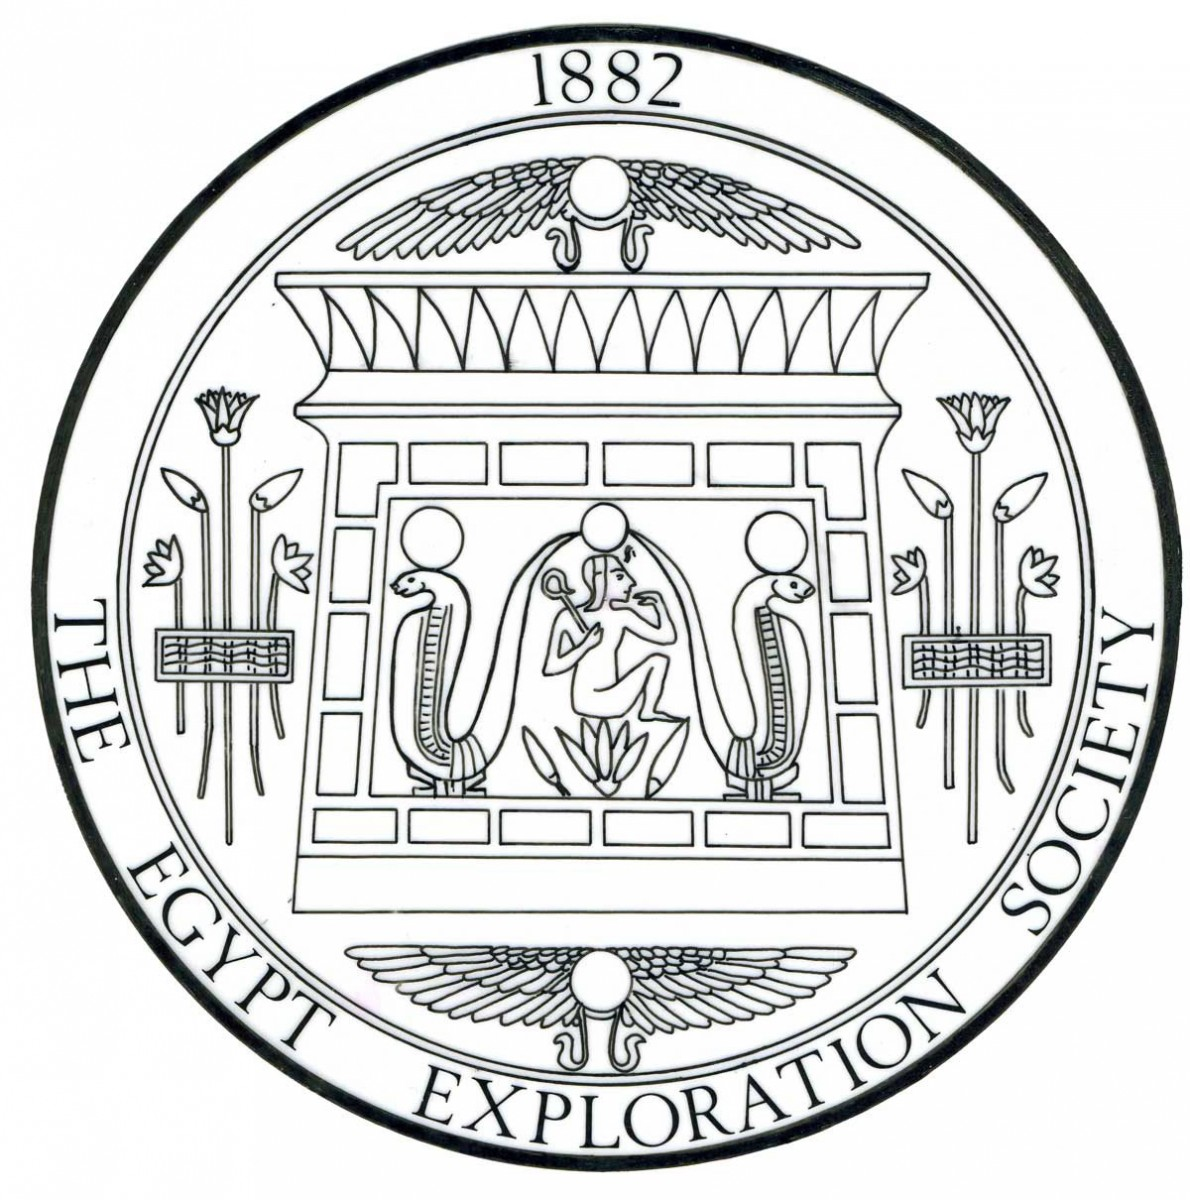 Since its founding in 1882 the Egypt Exploration Society's mission has been to explore ancient Egyptian sites and monuments, to create a lasting record of the remains, to generate enthusiasm for, and increase knowledge and understanding of, Egypt's past and to raise awareness of the importance of protecting its heritage.